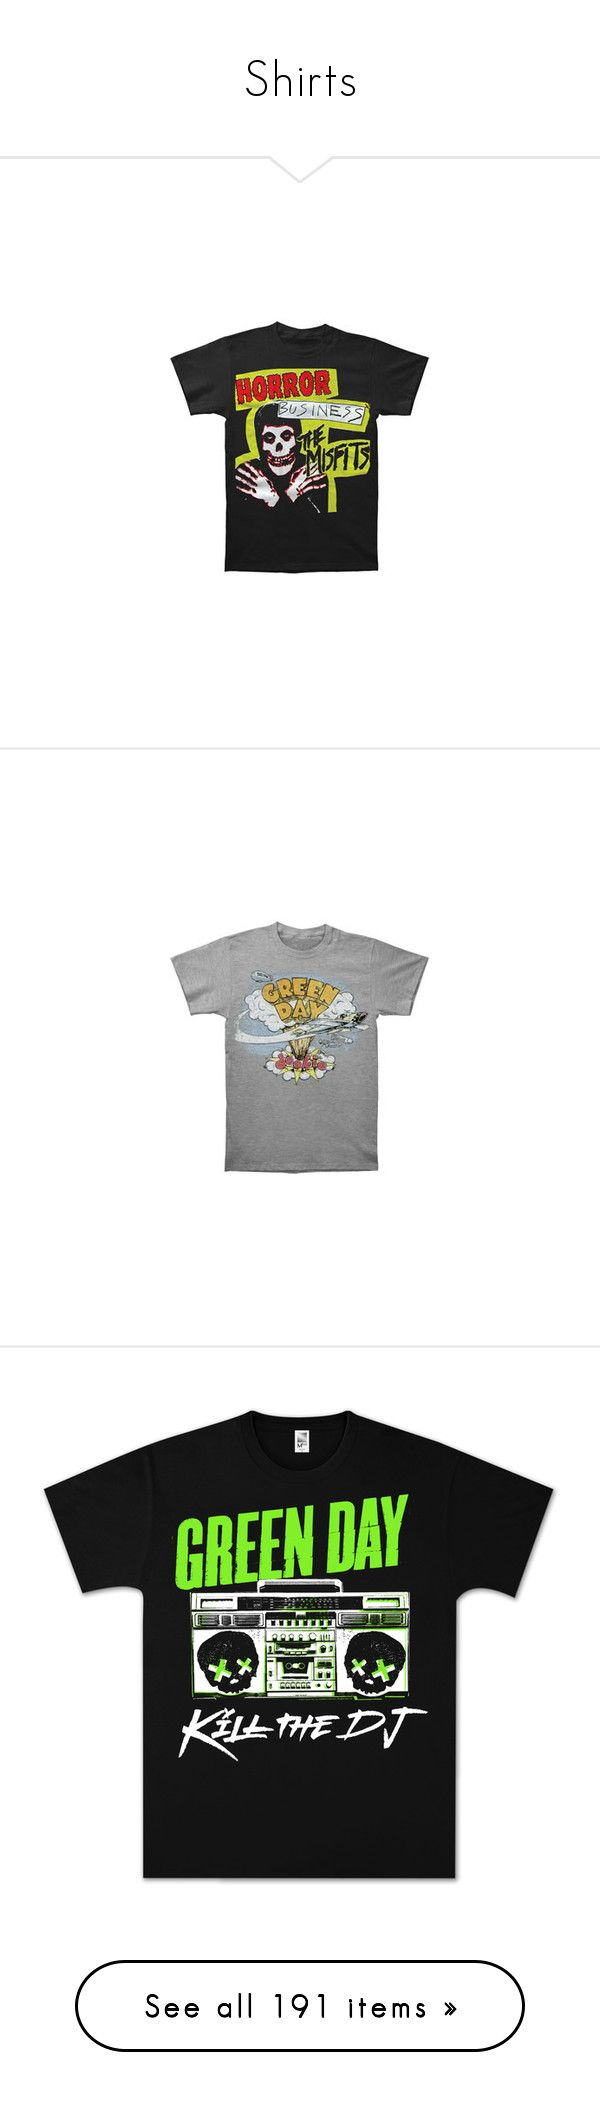 """Shirts"" by prettymuchtrash on Polyvore featuring tops, t-shirts, shirts, band tees, rock t shirts, vintage rock and roll t shirts, vintage shirts, vintage rock t shirts, rock and roll shirts and band shirts"